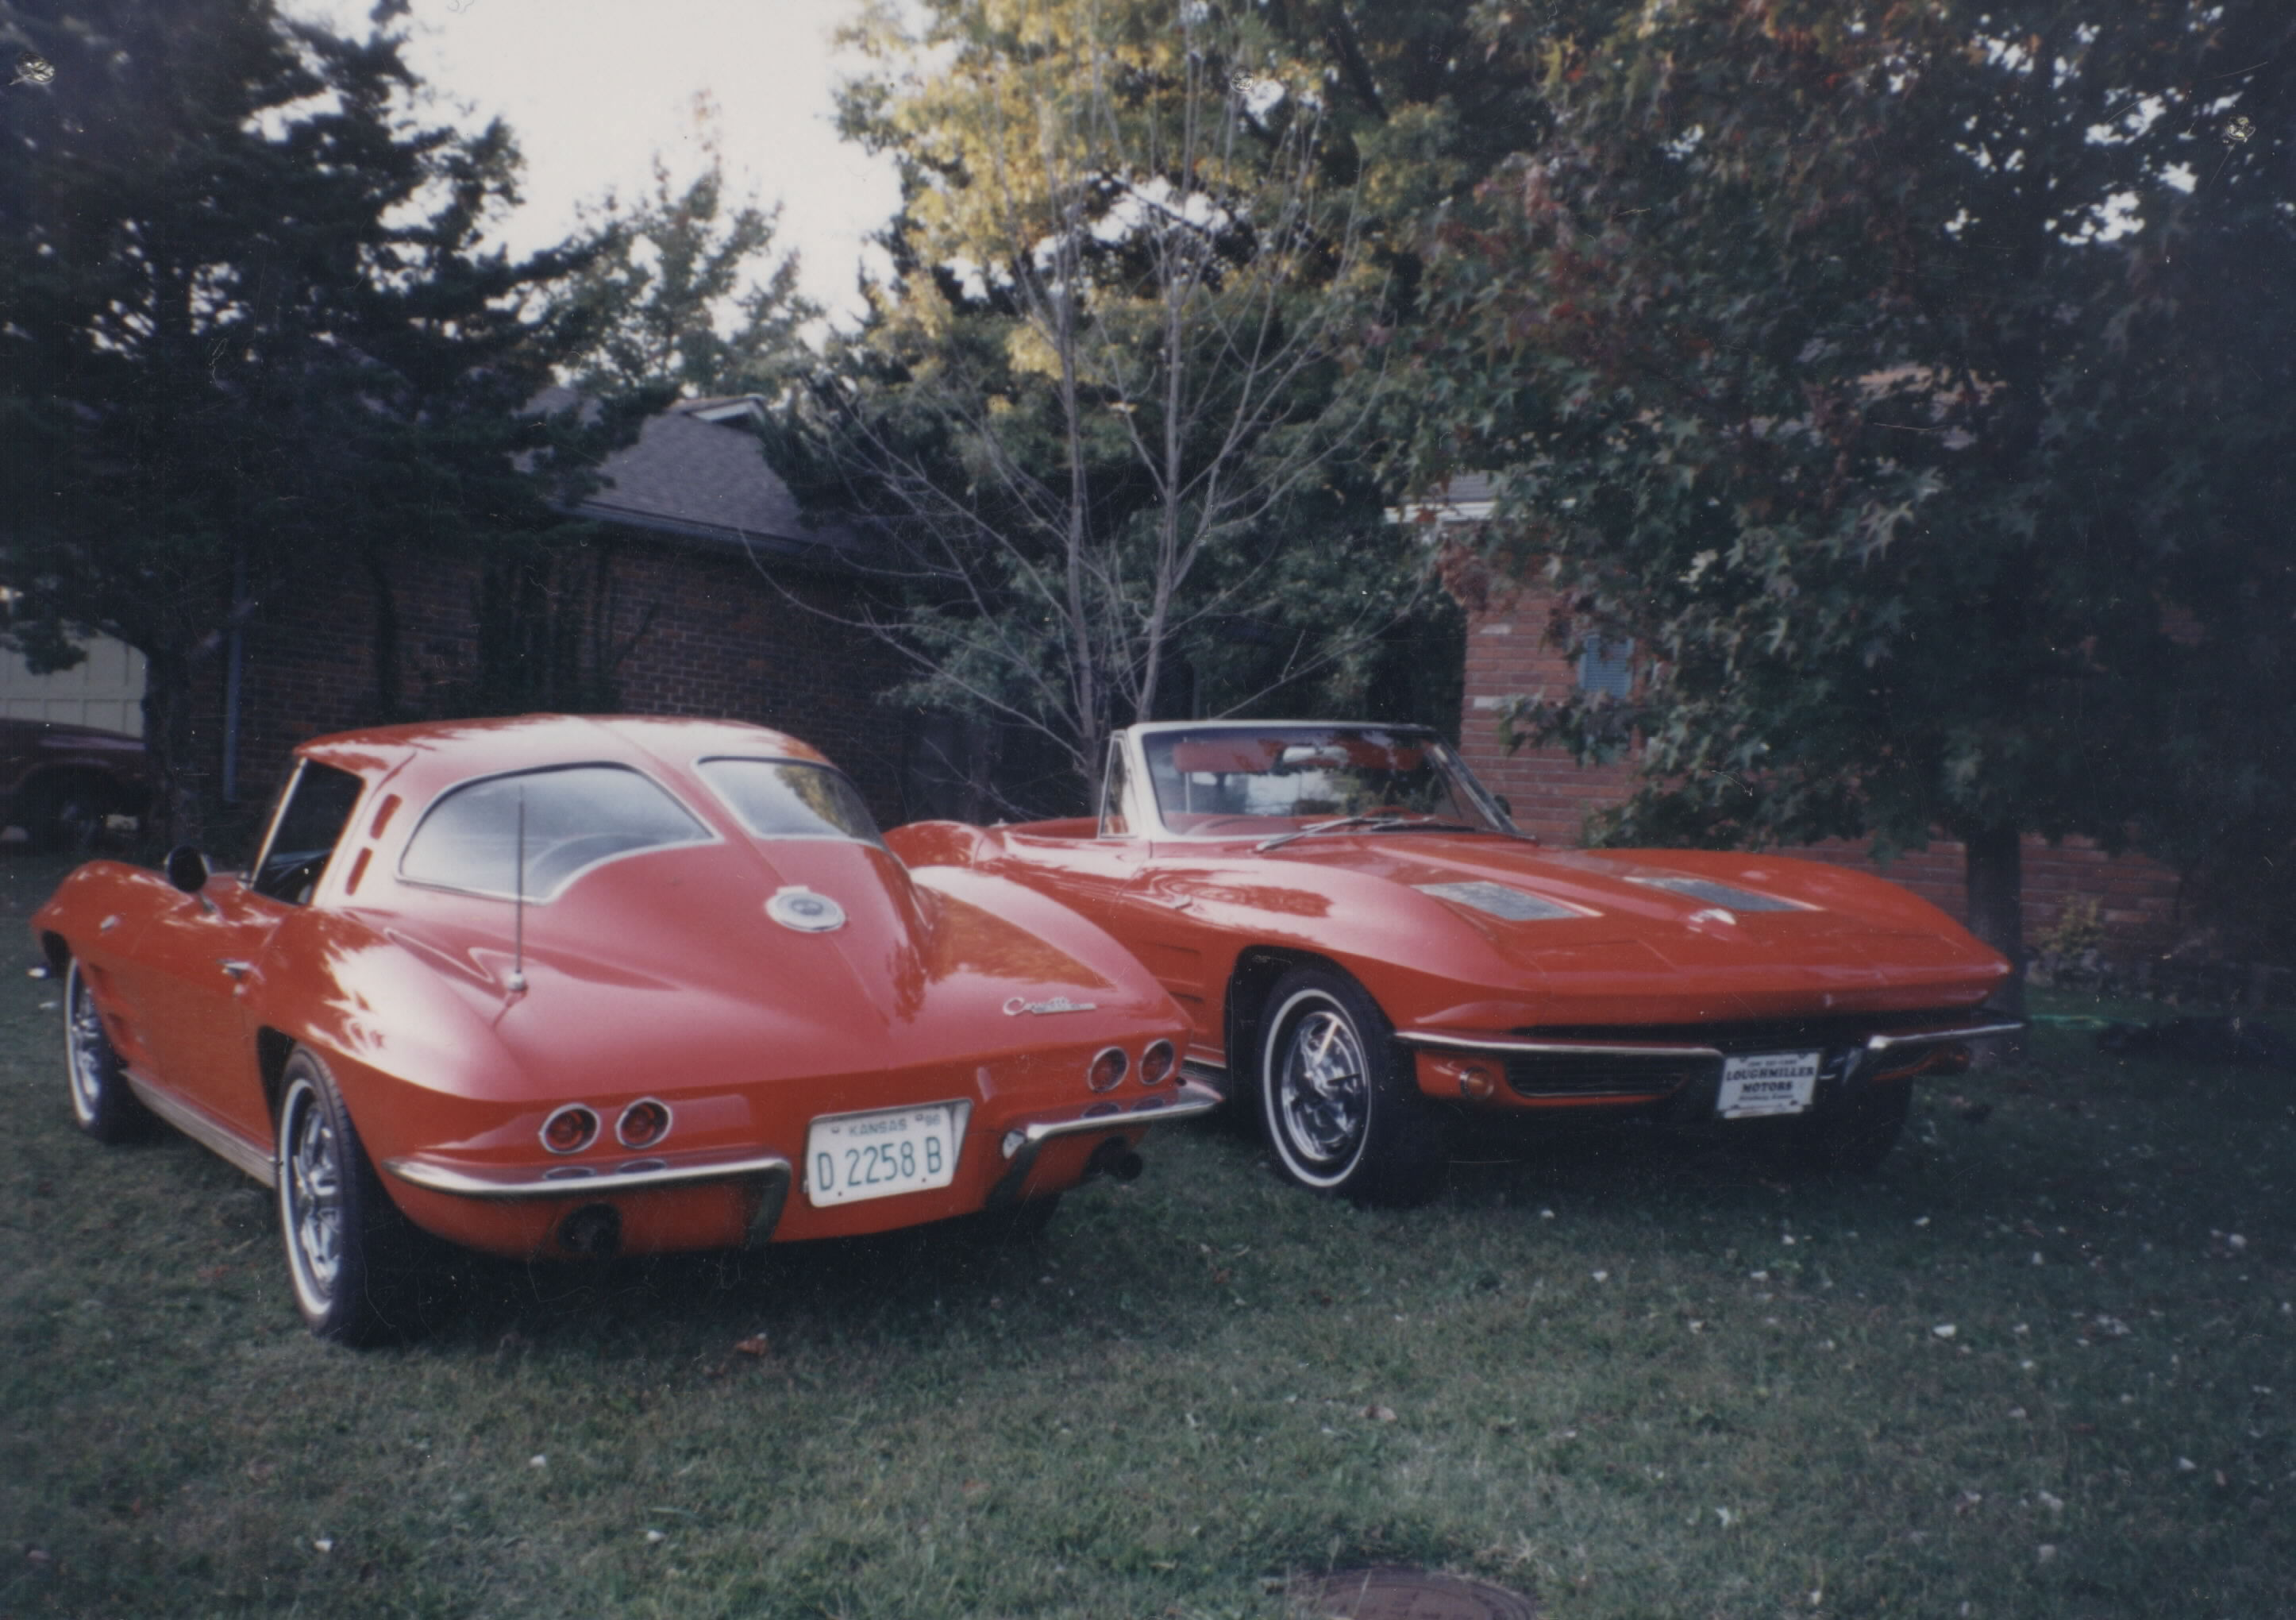 Tom's '63 Corvettes